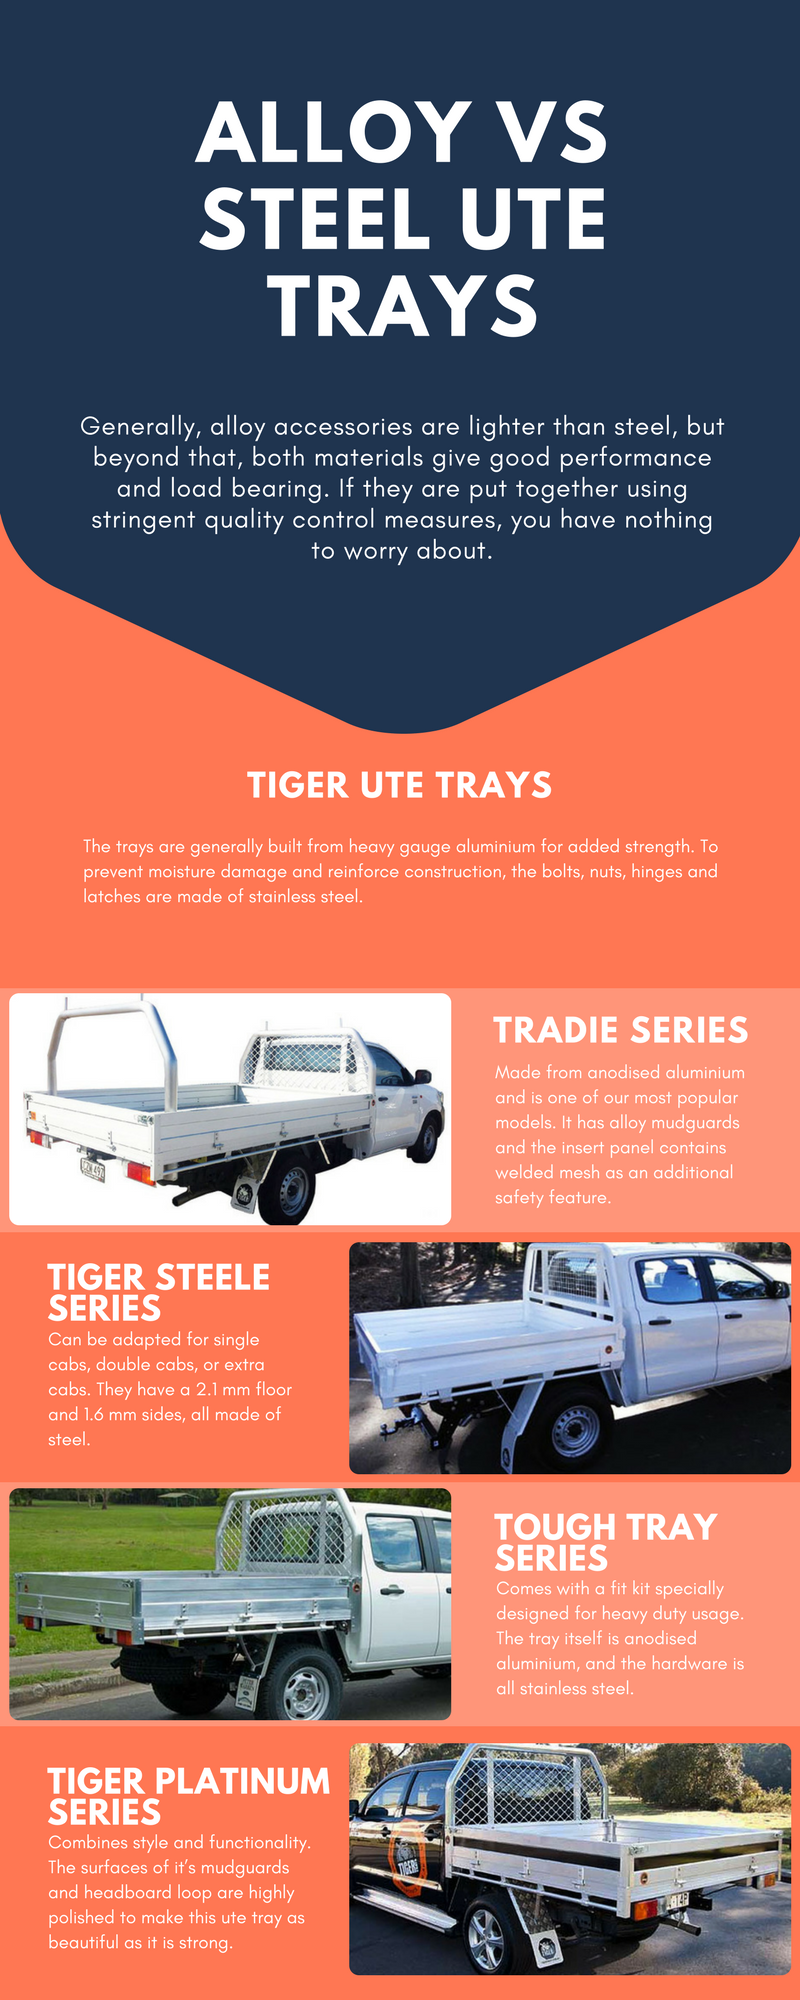 Alloy Vs Steel Ute Trays